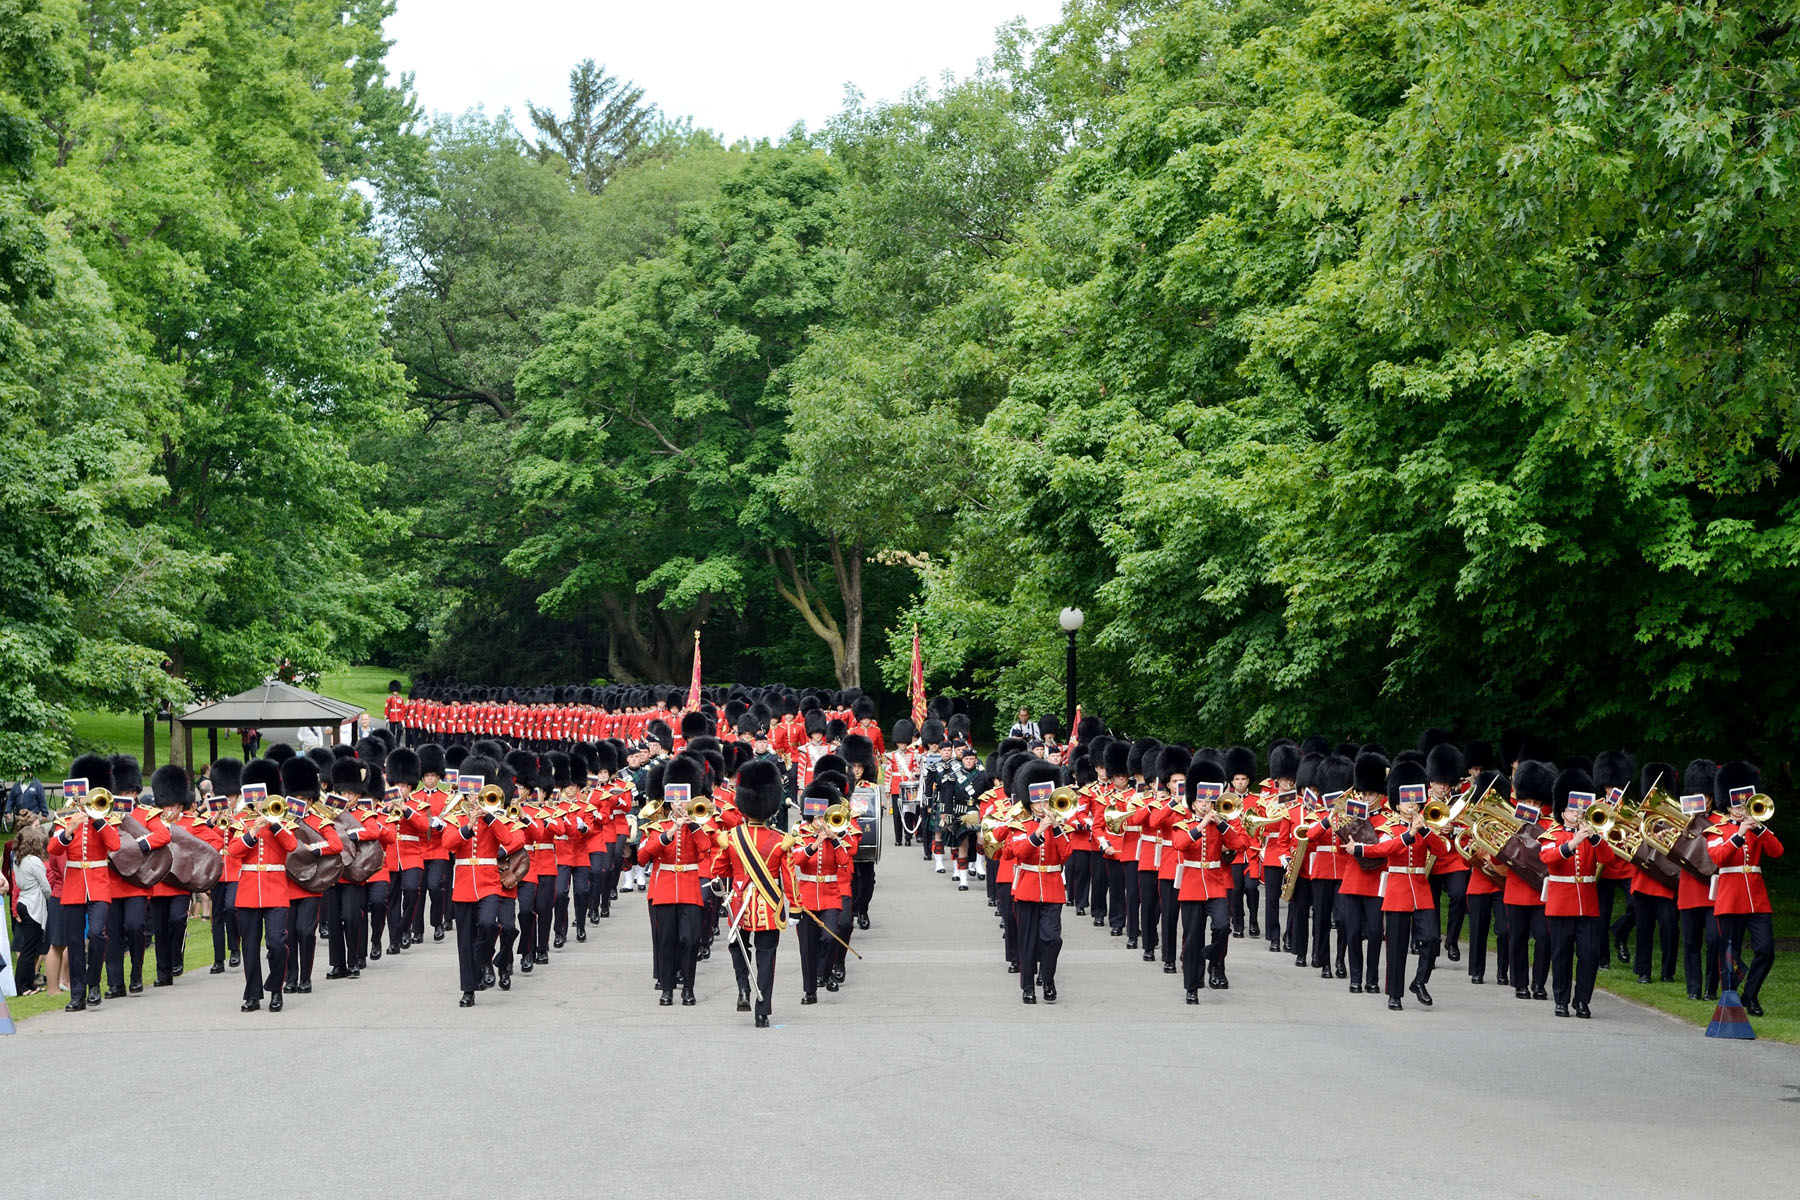 His Excellency the Right Honourable David Johnston, Governor General and Commander-in-Chief of Canada, invited the public to join him for the annual Inspection of the Ceremonial Guard, on the grounds of Rideau Hall.